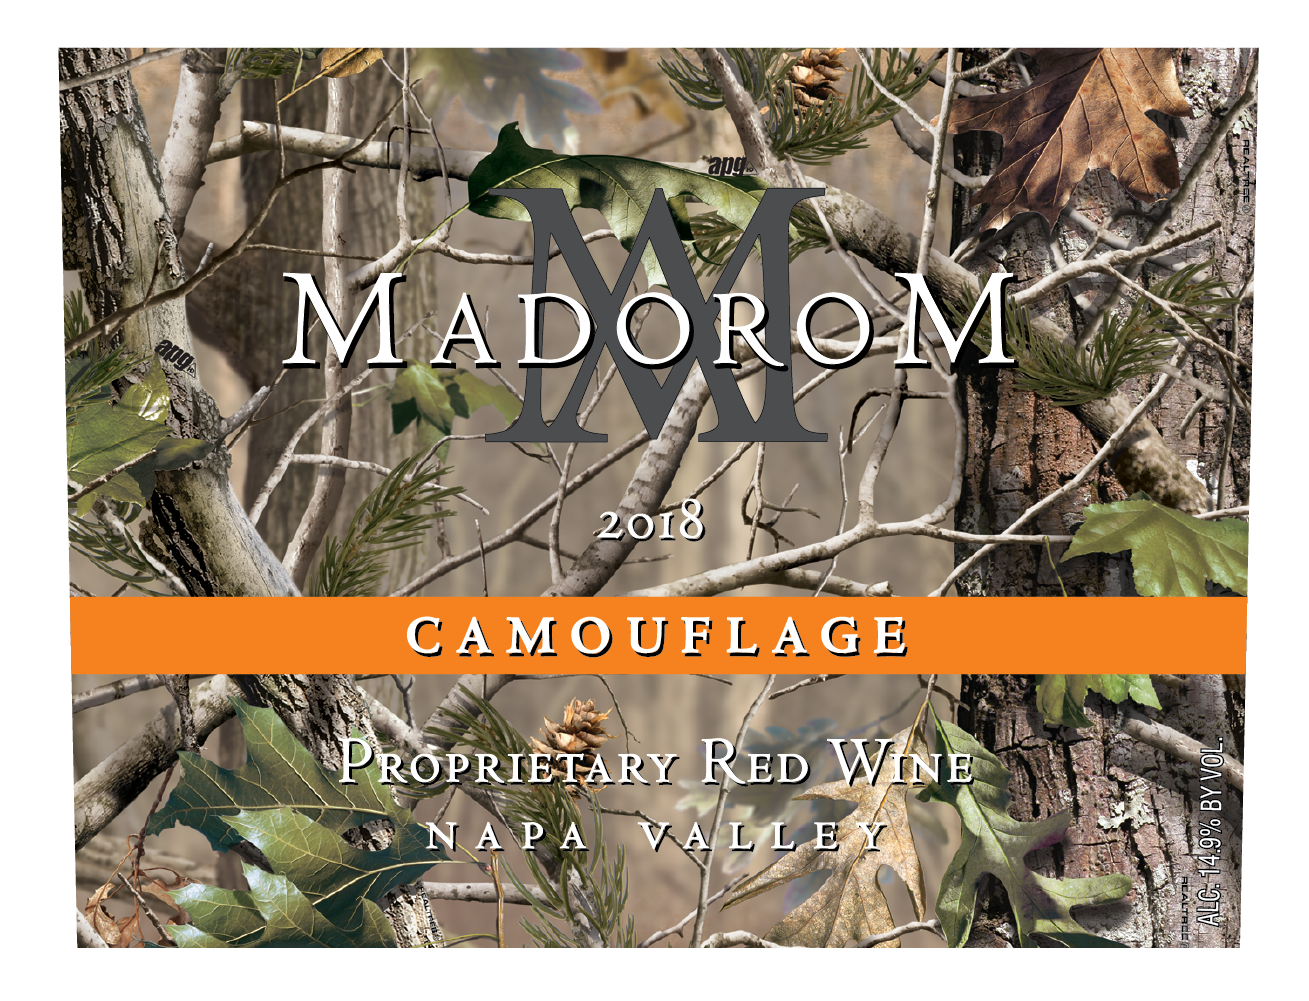 Product Image for 2018 MadoroM Napa Valley Camouflage Proprietary Red Blend